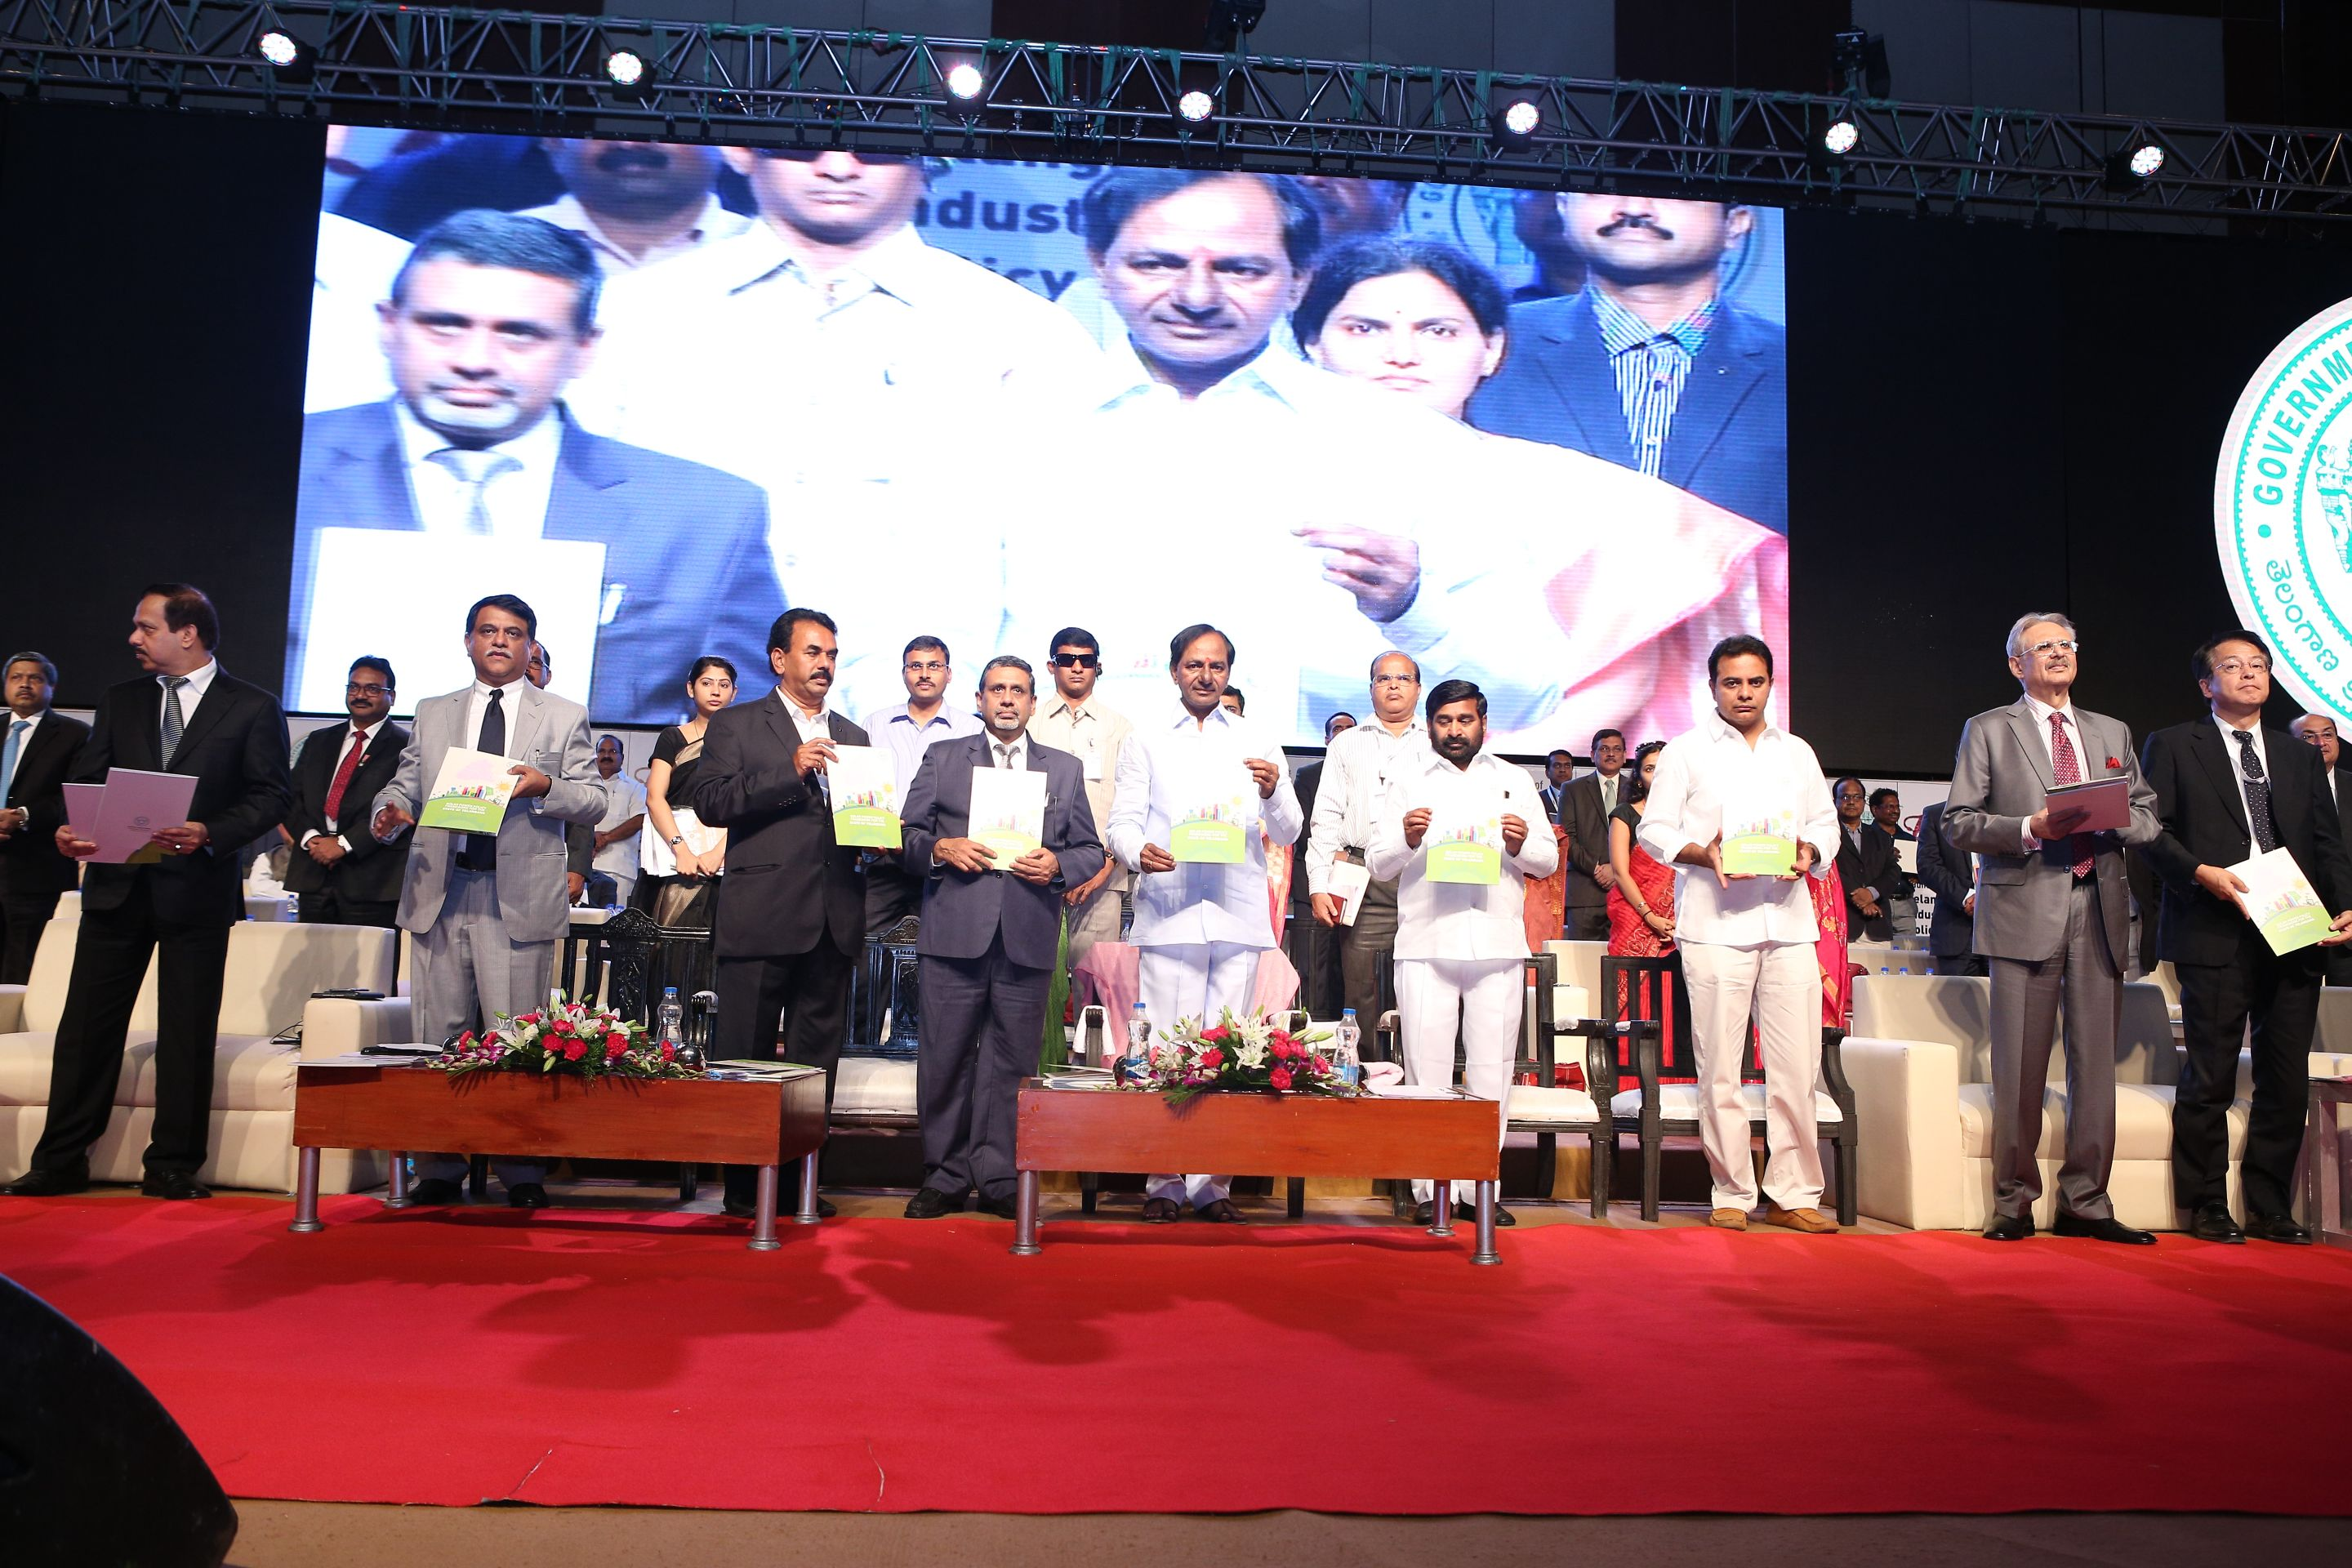 Chief Minister K.Chandrashekhar Rao launching of Telangana Industrial Policy 2015 at HICC on 12.06.2015.